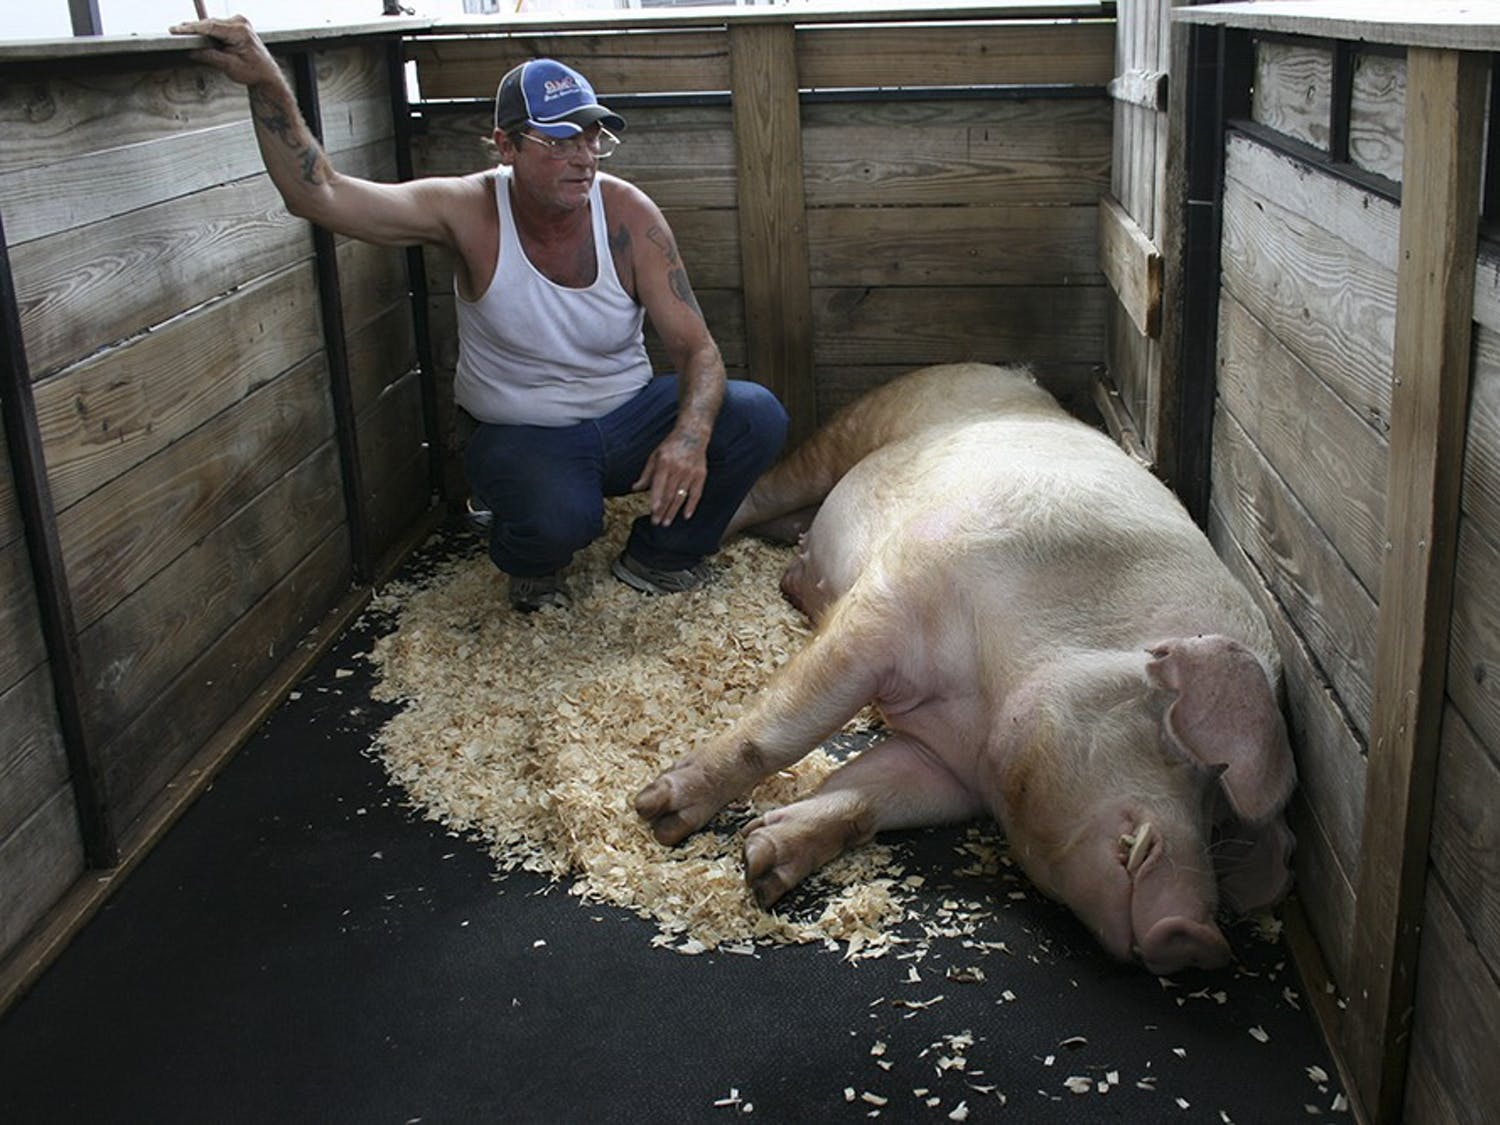 John Wadsworth, with Bubba. John is from Myakka City, Fla. He cares for Robby the rat (2 years old) & Bubba the pig (5 years). They live with him year round when he's not traveling with the Fair.